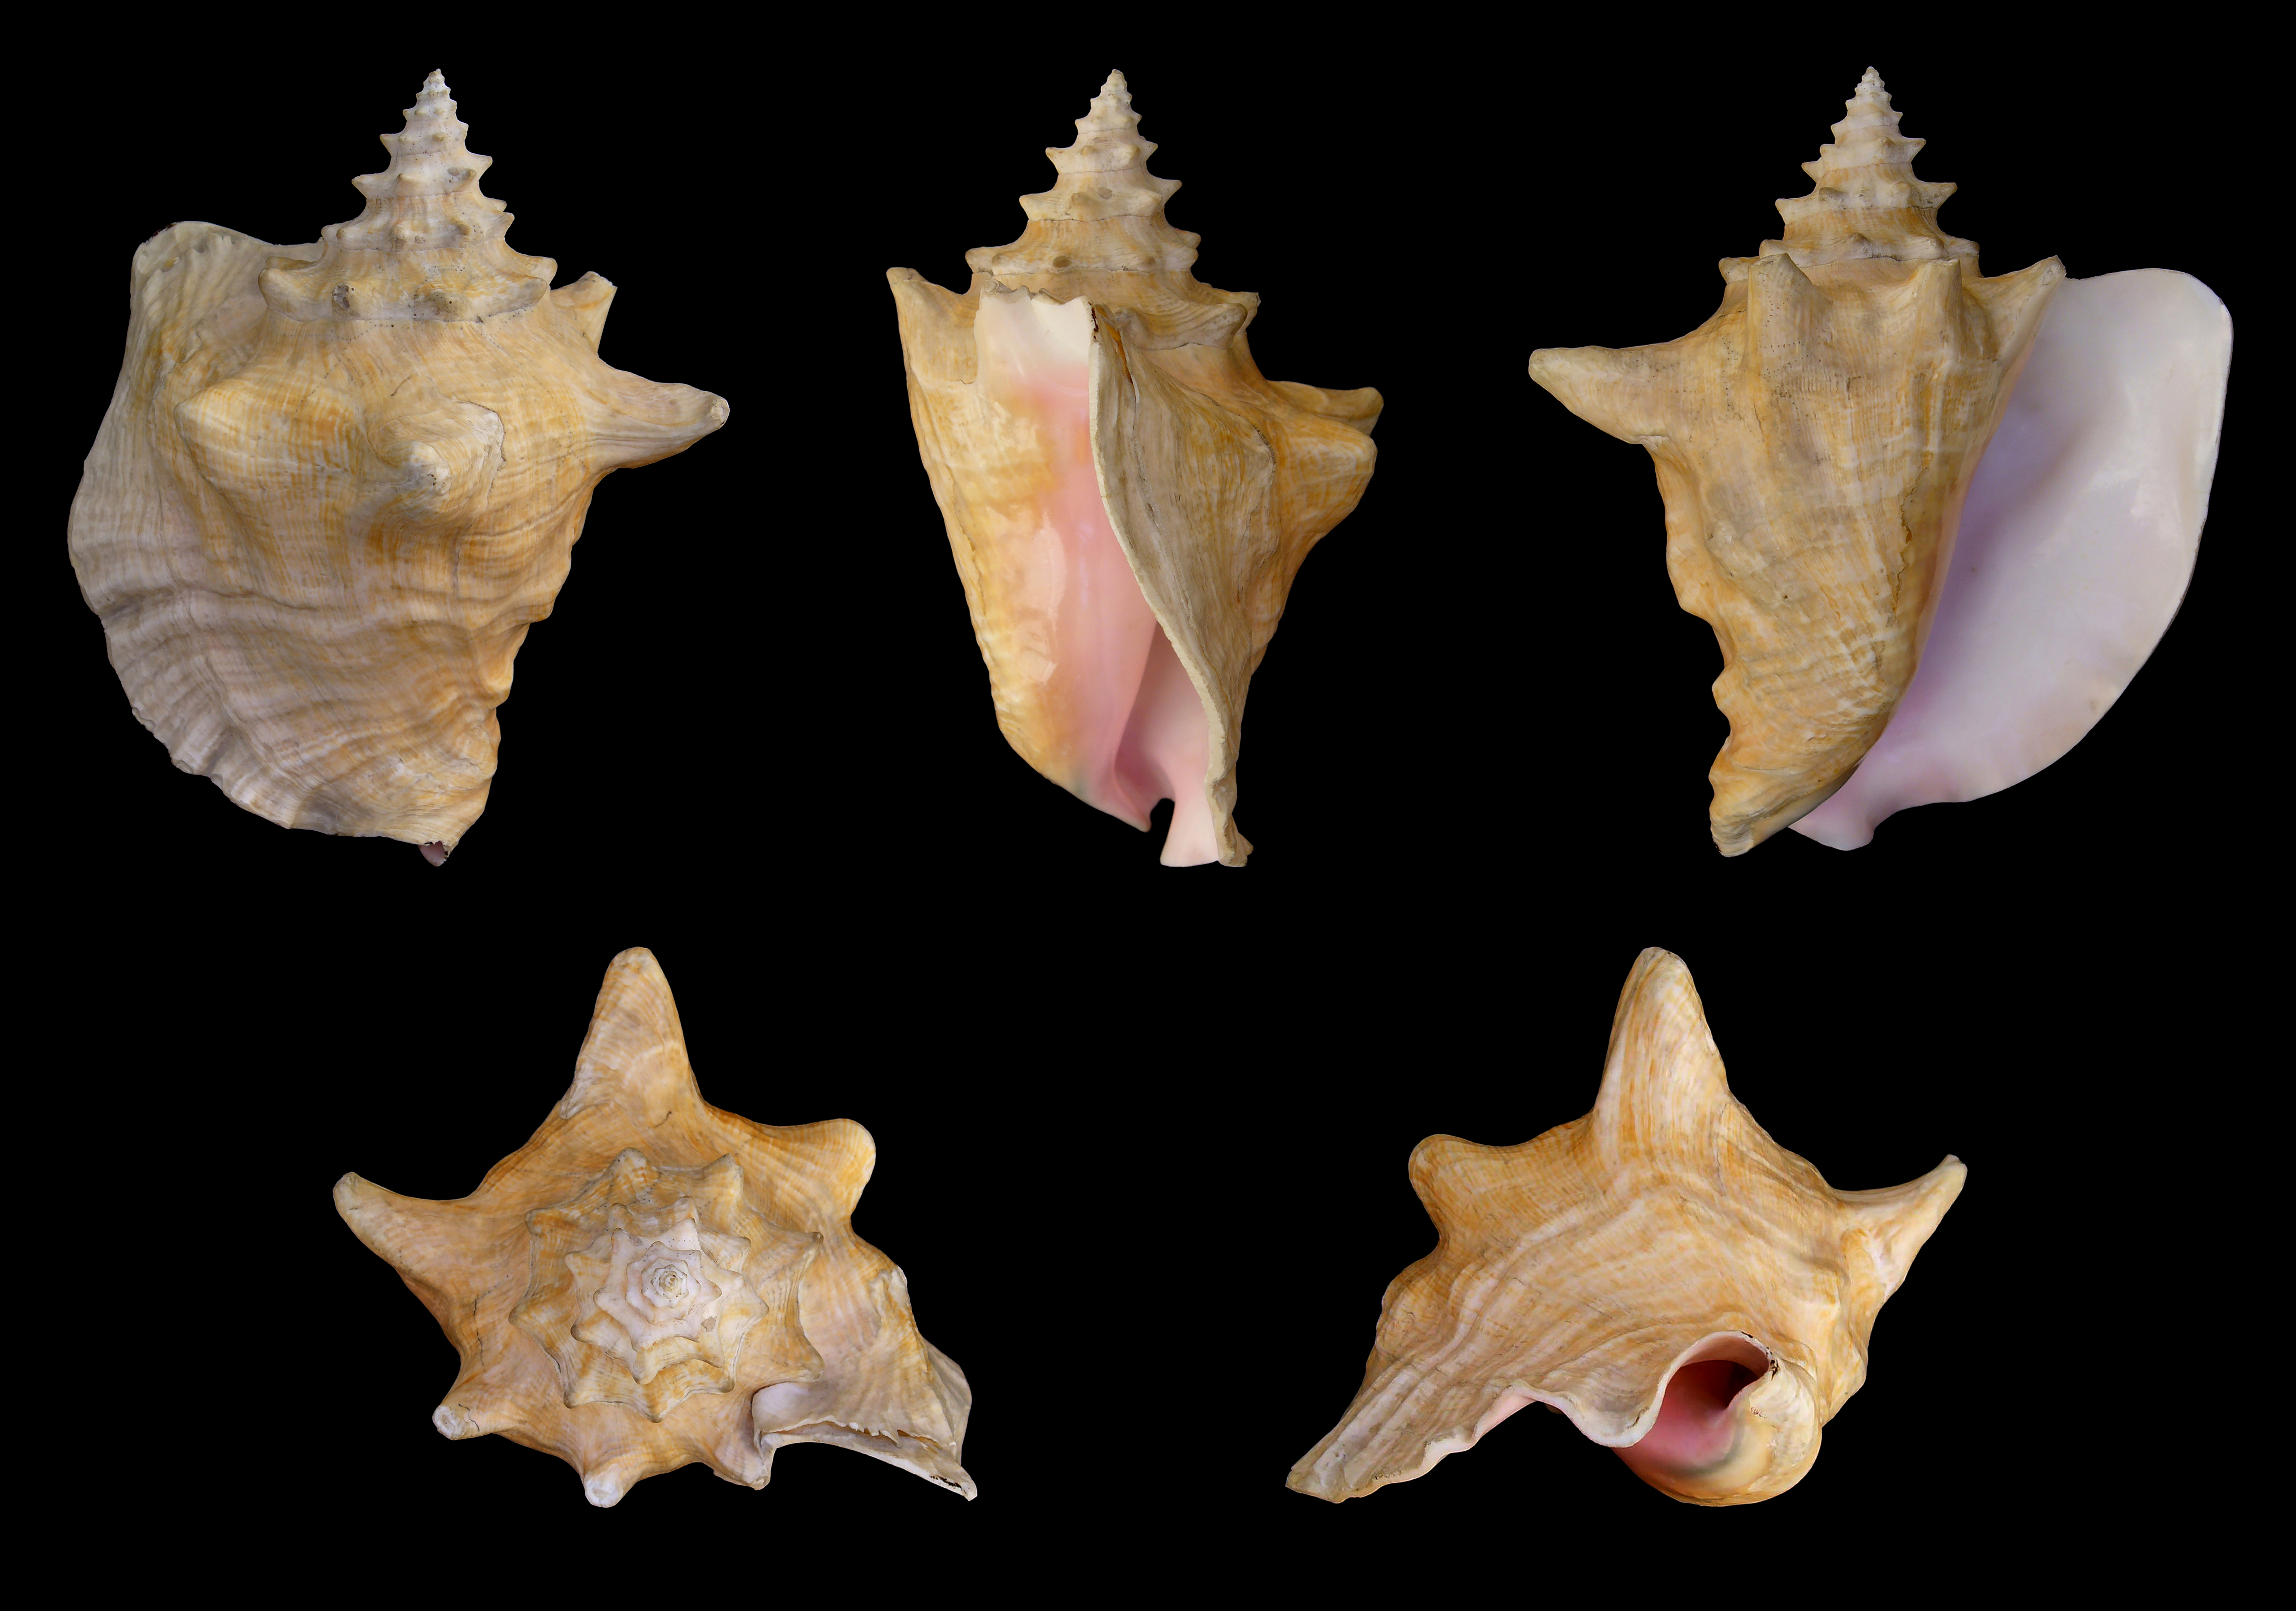 Drawn shell queen conch From Wikipedia perspectives is five